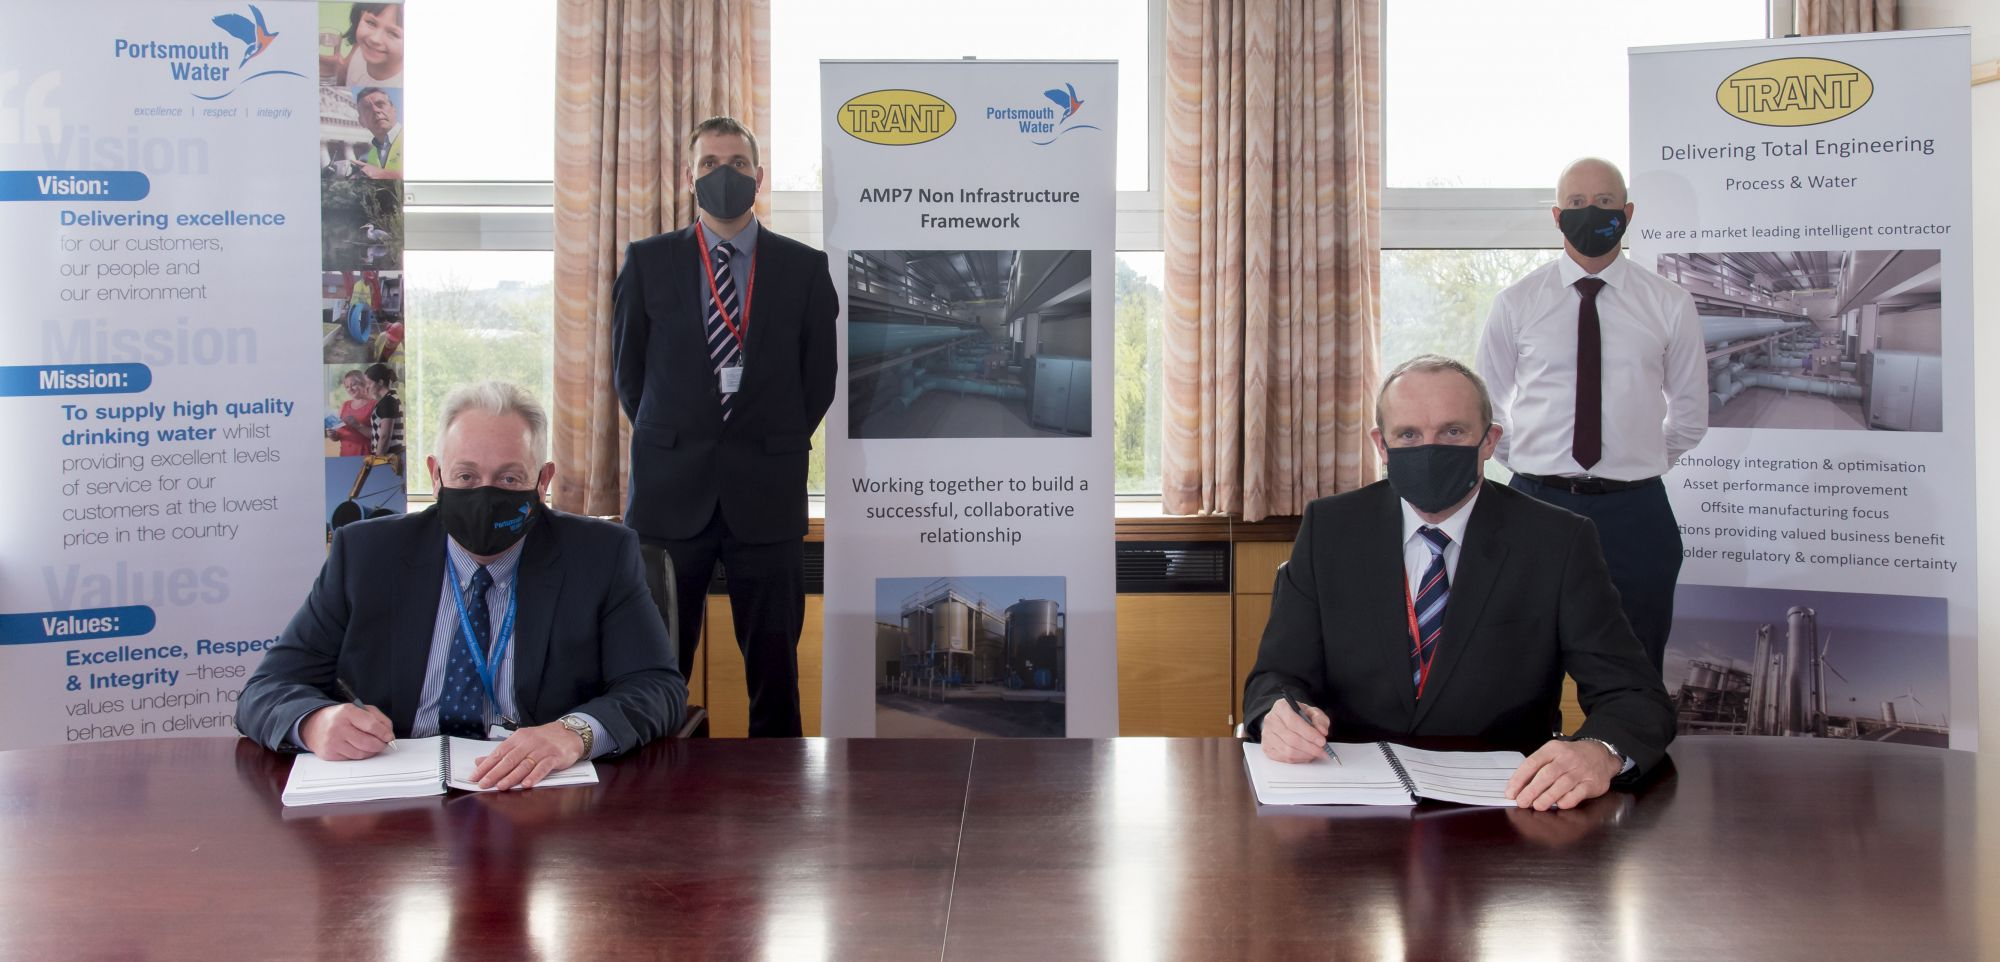 Portsmouth Water has signed an initial four-year framework agreement with Trant Engineering for the remainder of the water company's seventh asset management period (AMP7) to 2025, with the option of a five-year extension for the AMP8 regulatory period to 2030. The contract is worth up to £20 million. Scope of work in the non-infrastructure investment programme includes maintenance and new projects for assets above and below ground. Pictured at the signing, from left, are, seated, Bob Taylor, Chief Executive, Portsmouth Water, and, Gerry Somers, Managing Director, UK, Trant Engineering. From left at the back, James Henderson, Director – Process & Water, Trant Engineering, and Mark Mills, Head of Production & Asset Delivery, Portsmouth Water. Protective face coverings were worn inside Portsmouth Water's head office in Havant, near Portsmouth, where the signing took place. Portsmouth Water supplies clean drinking water from boreholes, springs and a river to 320,000 properties in Hampshire and West Sussex.